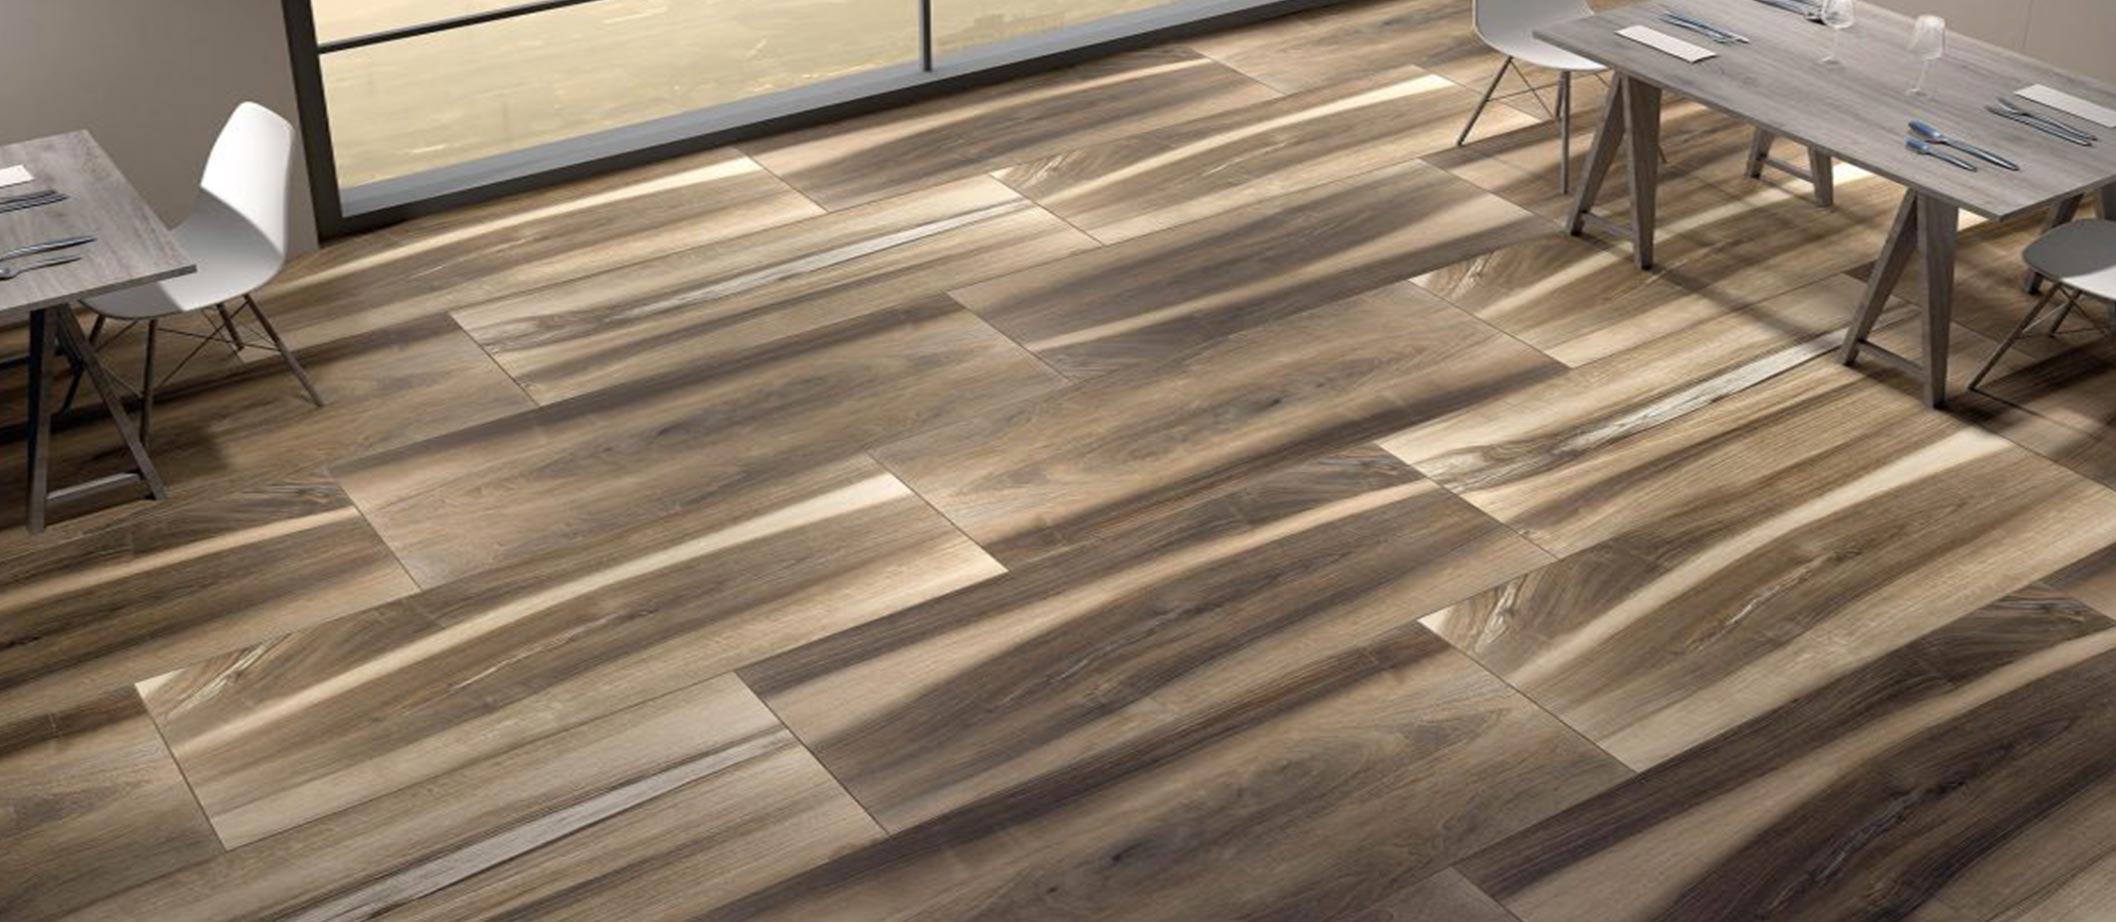 Ceramic and Granite Tiles from Cerdomus Imitates Wooden